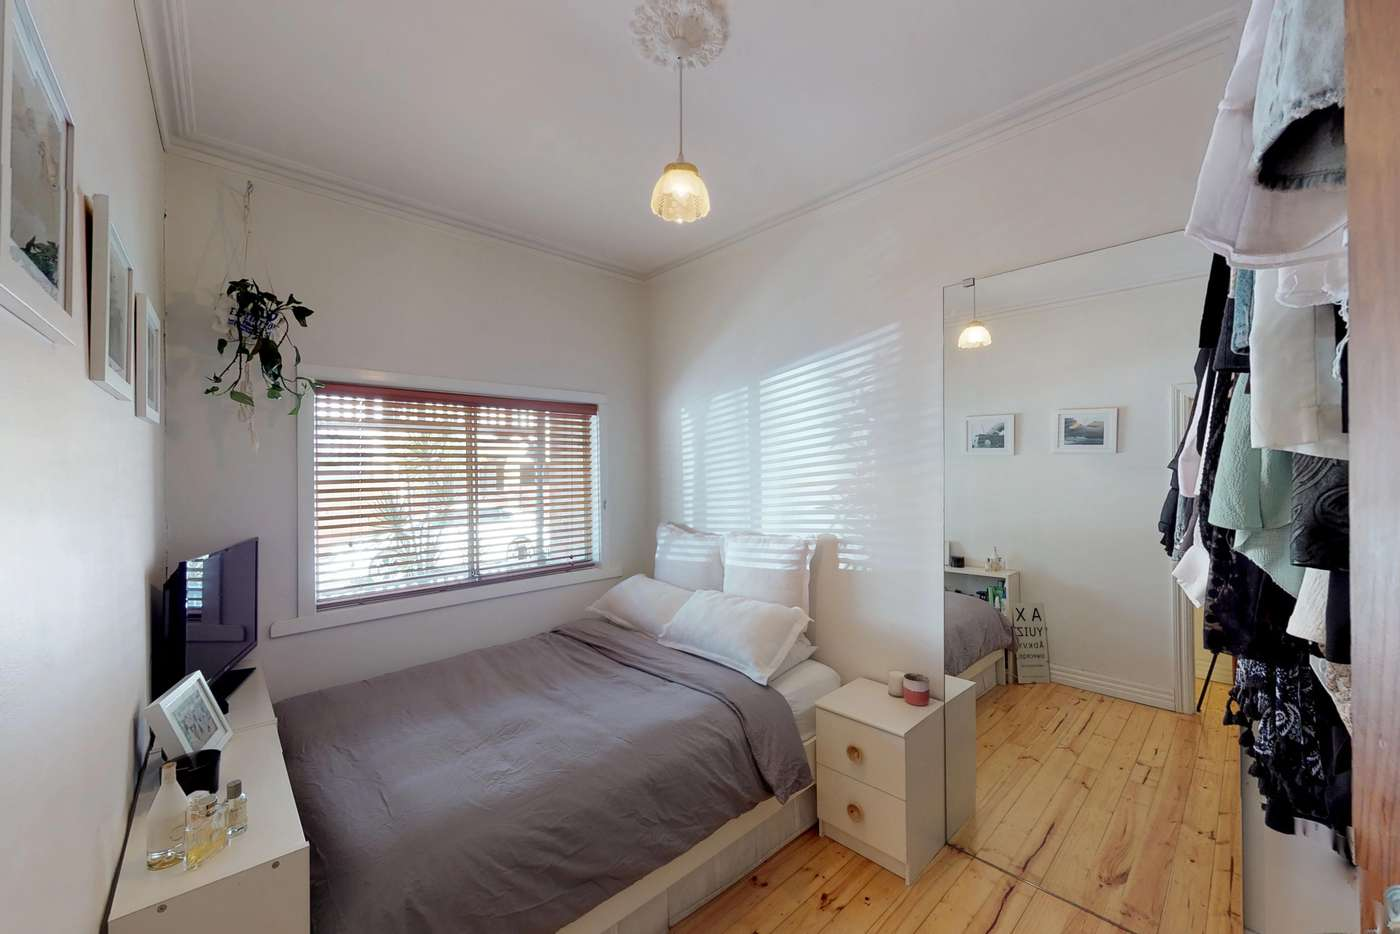 Sixth view of Homely house listing, 13 Sheedy  Street, Richmond VIC 3121